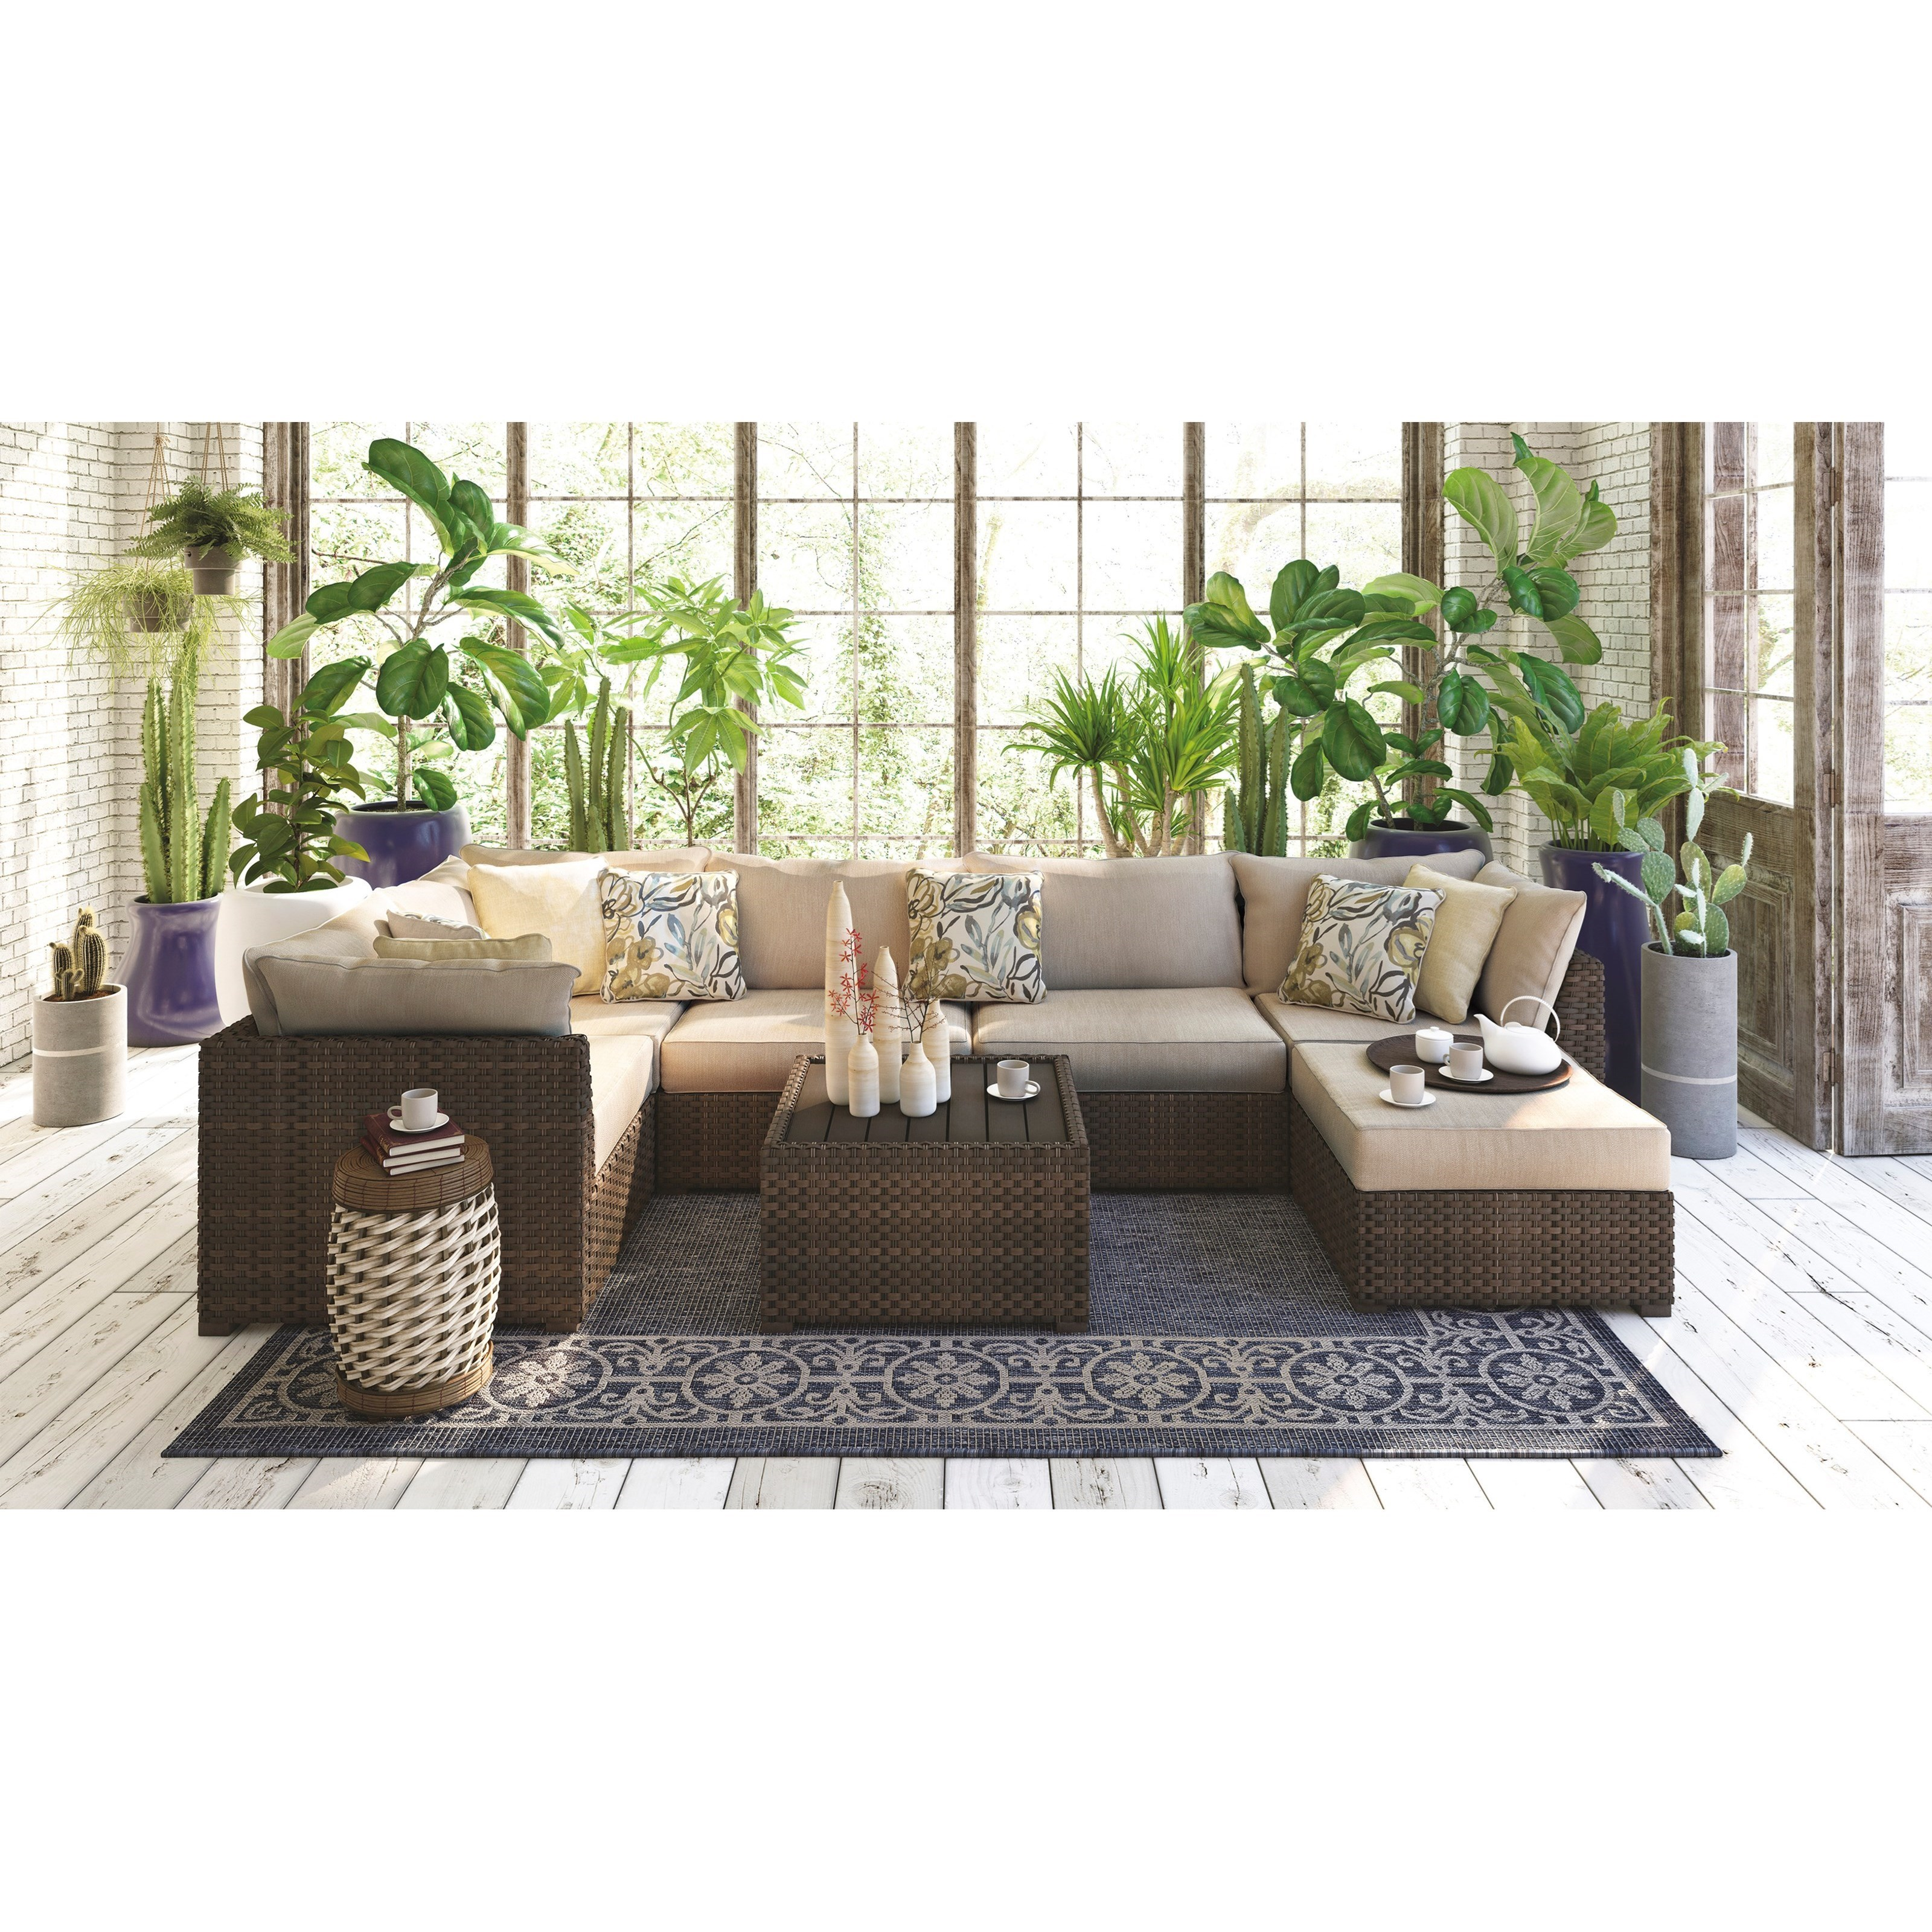 Beau Signature Design By Ashley Spring Ridge 7 Piece Outdoor Conversation Set